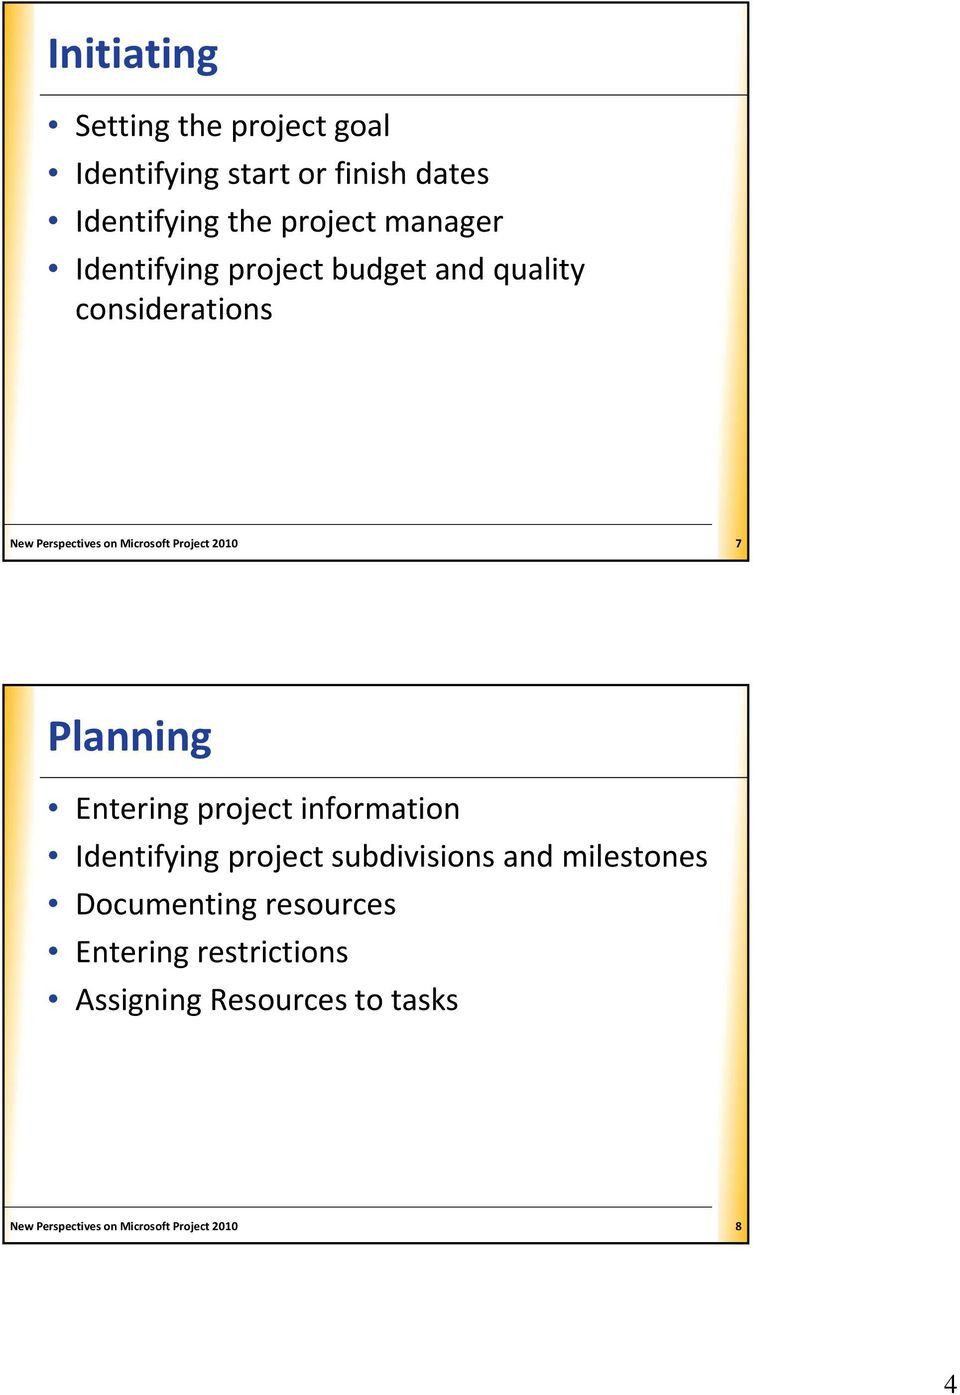 Planning Entering project information Identifying project subdivisions and milestones Documenting